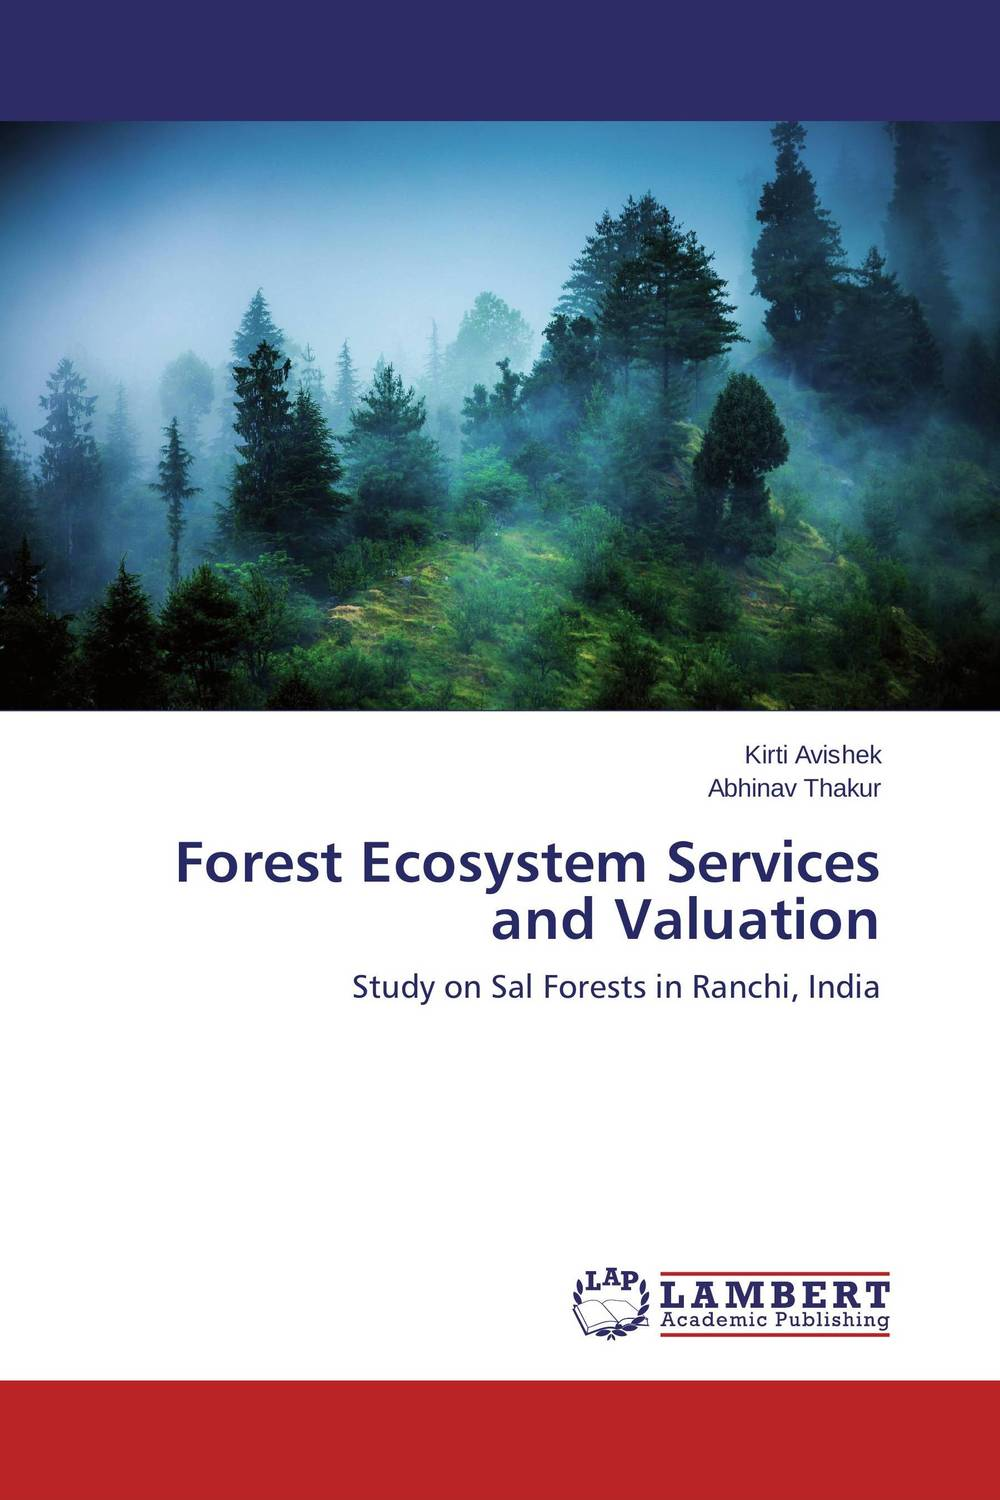 цена на Forest Ecosystem Services and Valuation